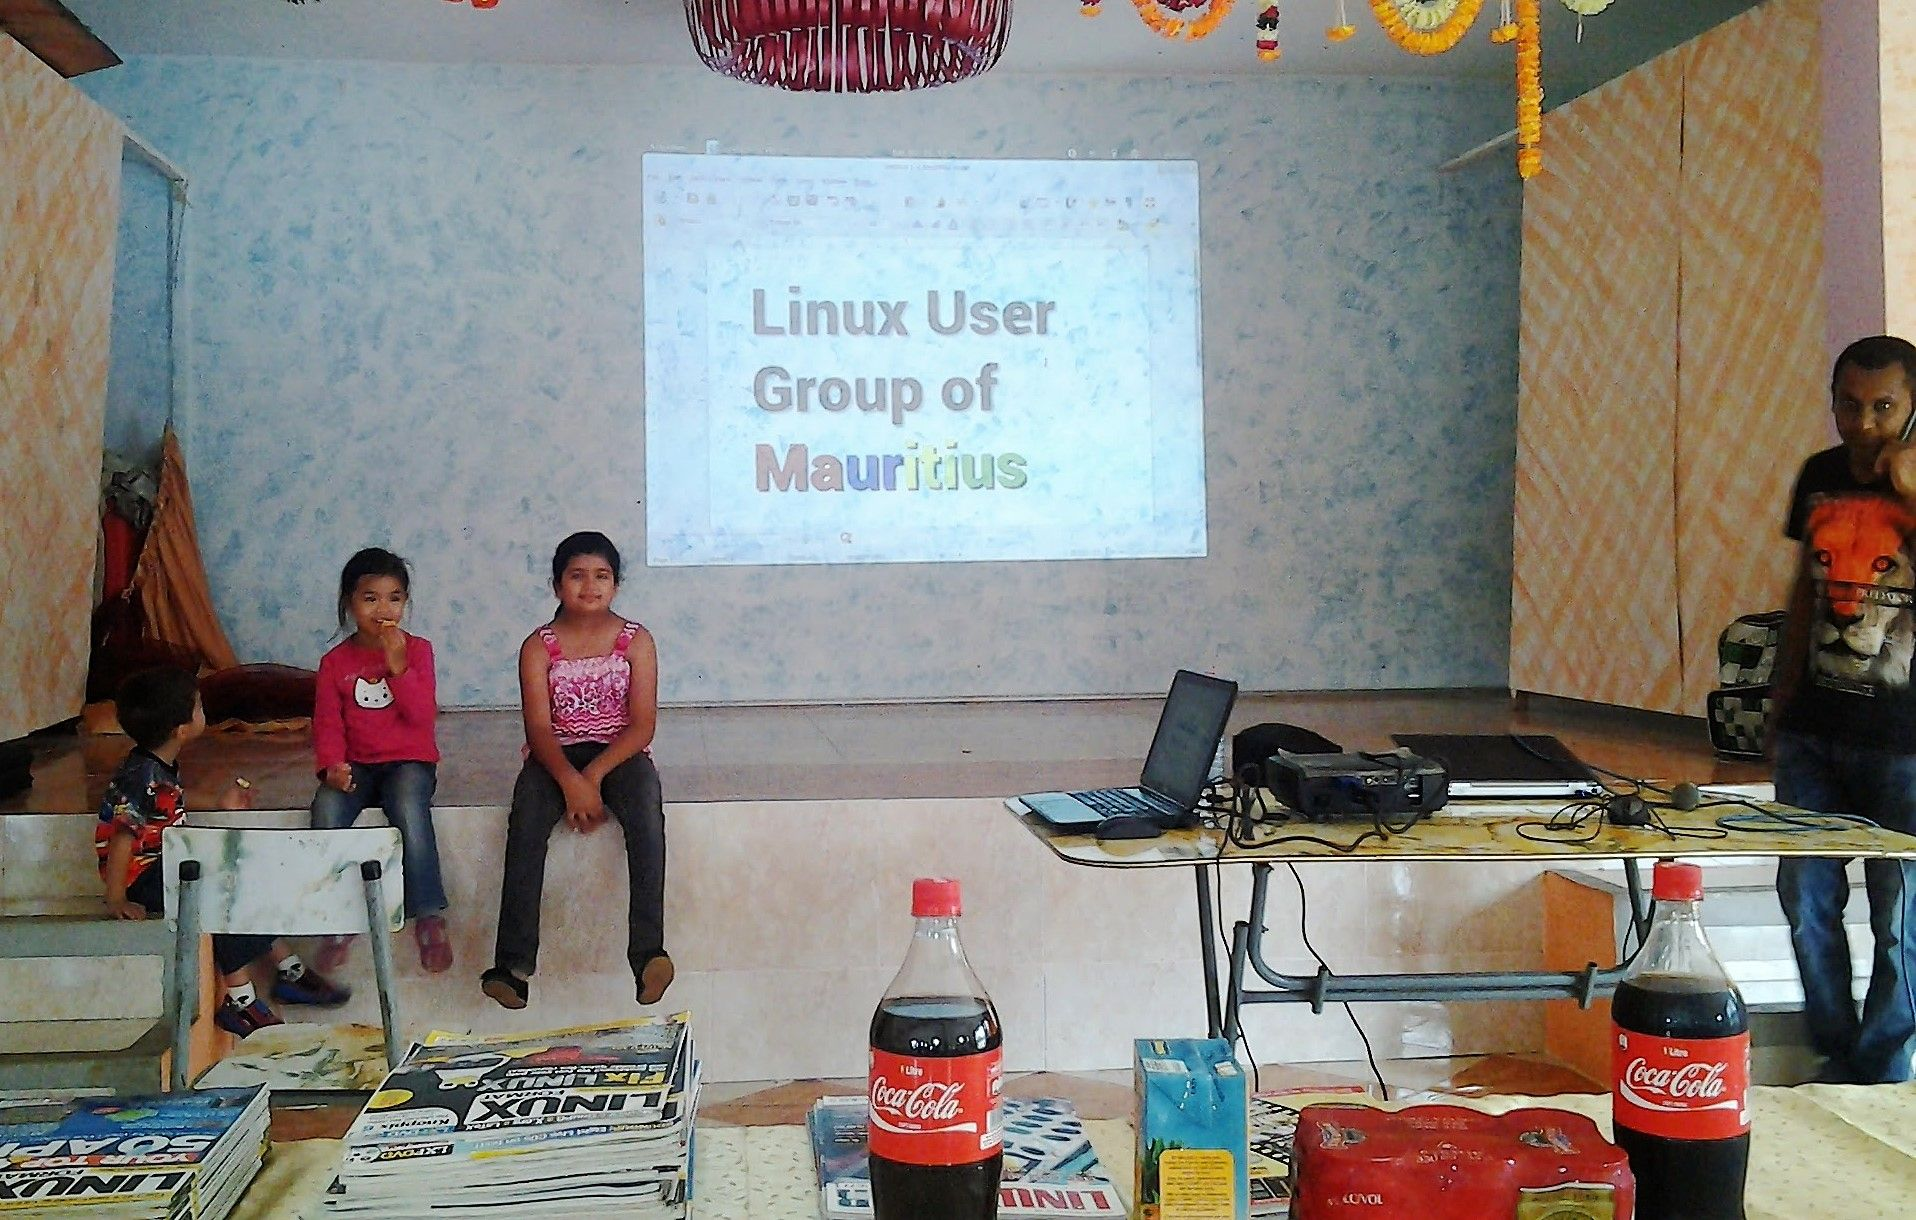 Feedback on meeting of the Linux User Group of Mauritius